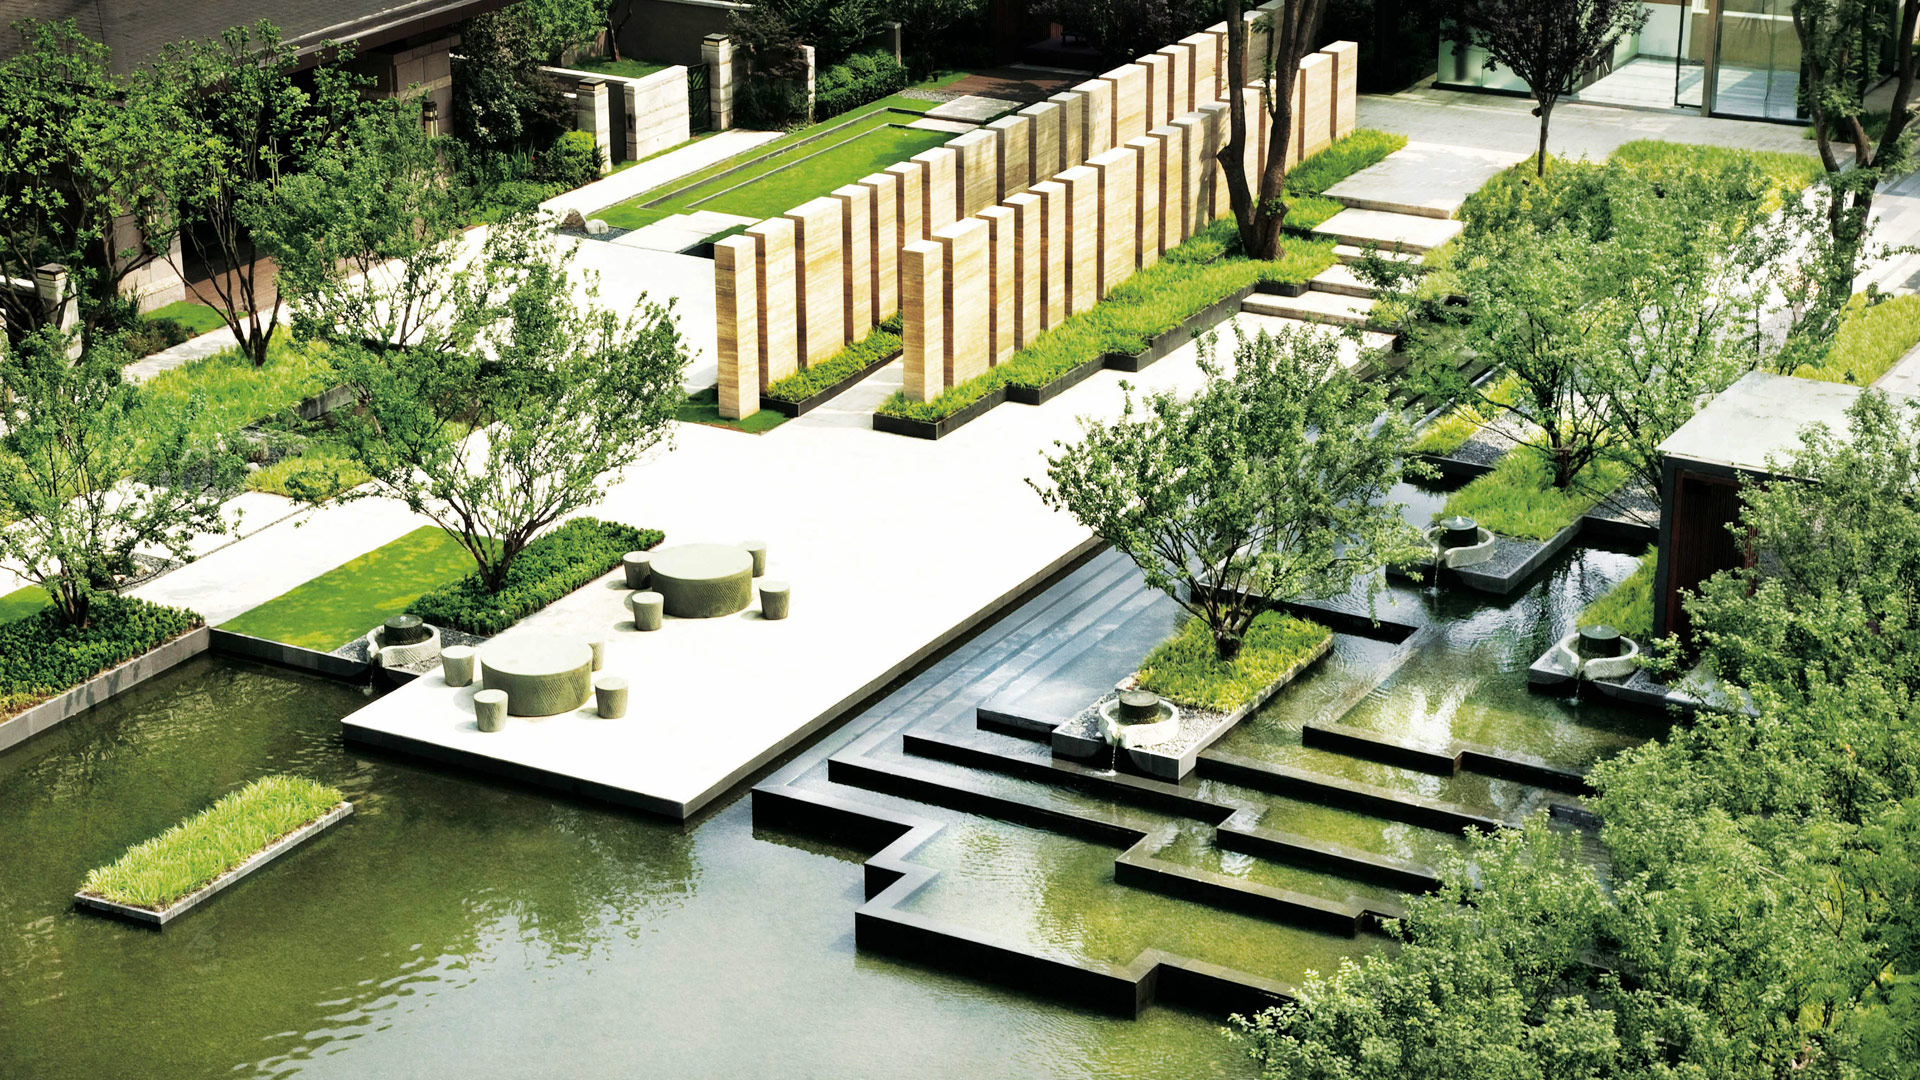 Landscape architect vacancy singapore 28 images for List of landscape architects